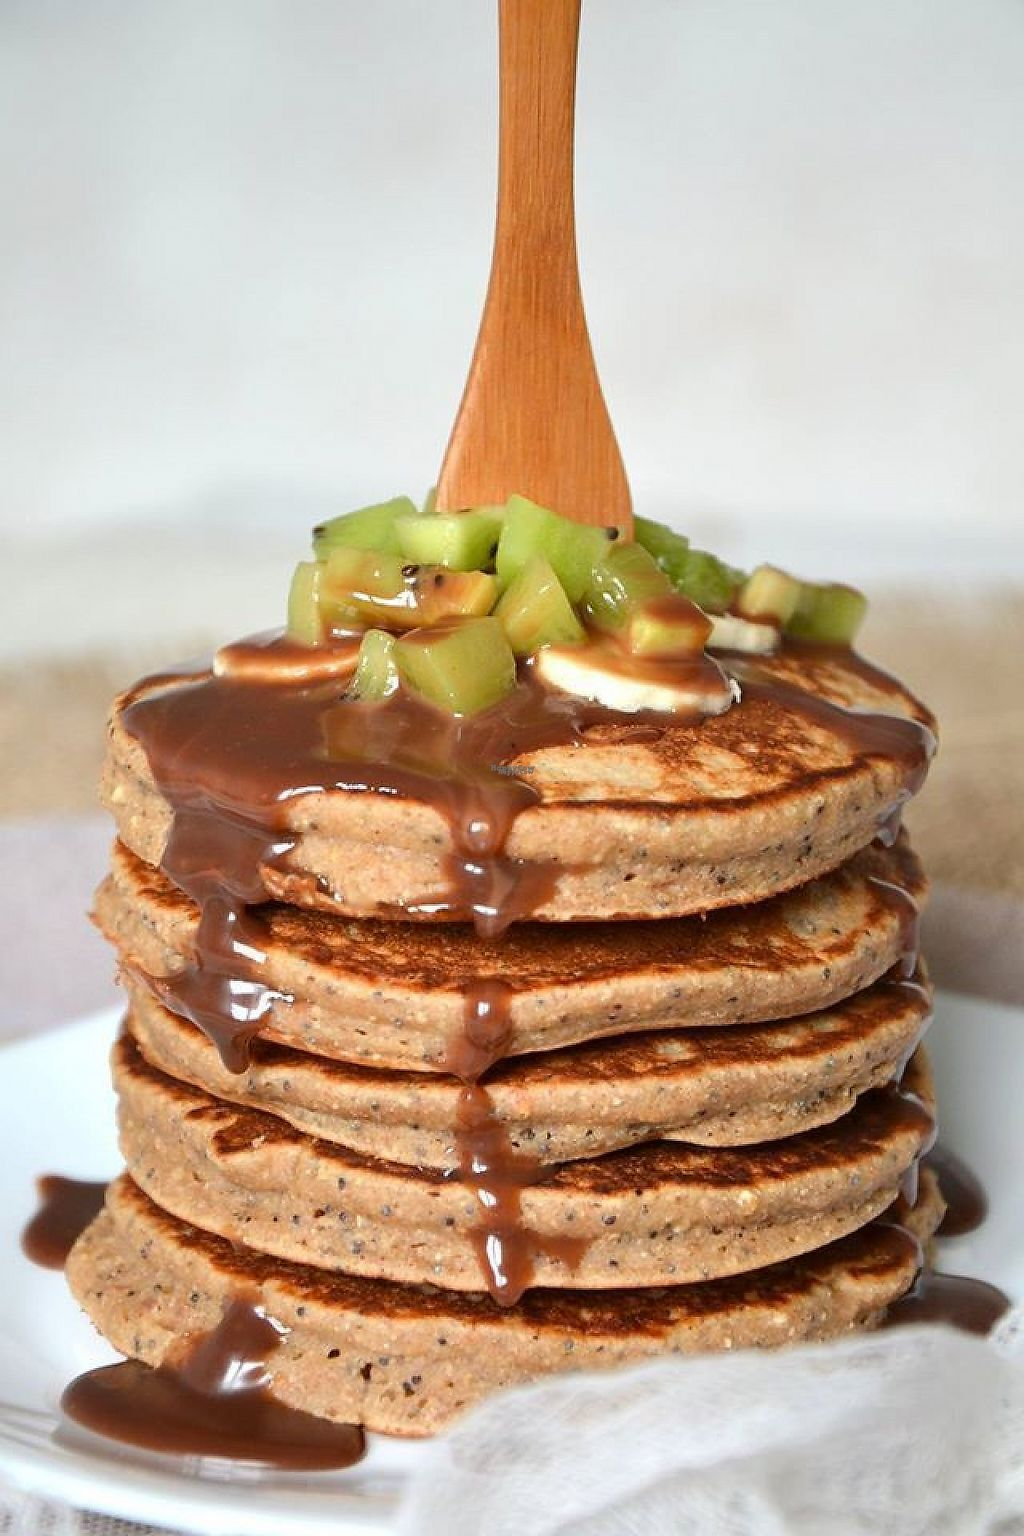 """Photo of La Vie Claire  by <a href=""""/members/profile/community"""">community</a> <br/>vegan pancakes  <br/> February 4, 2017  - <a href='/contact/abuse/image/72040/221888'>Report</a>"""